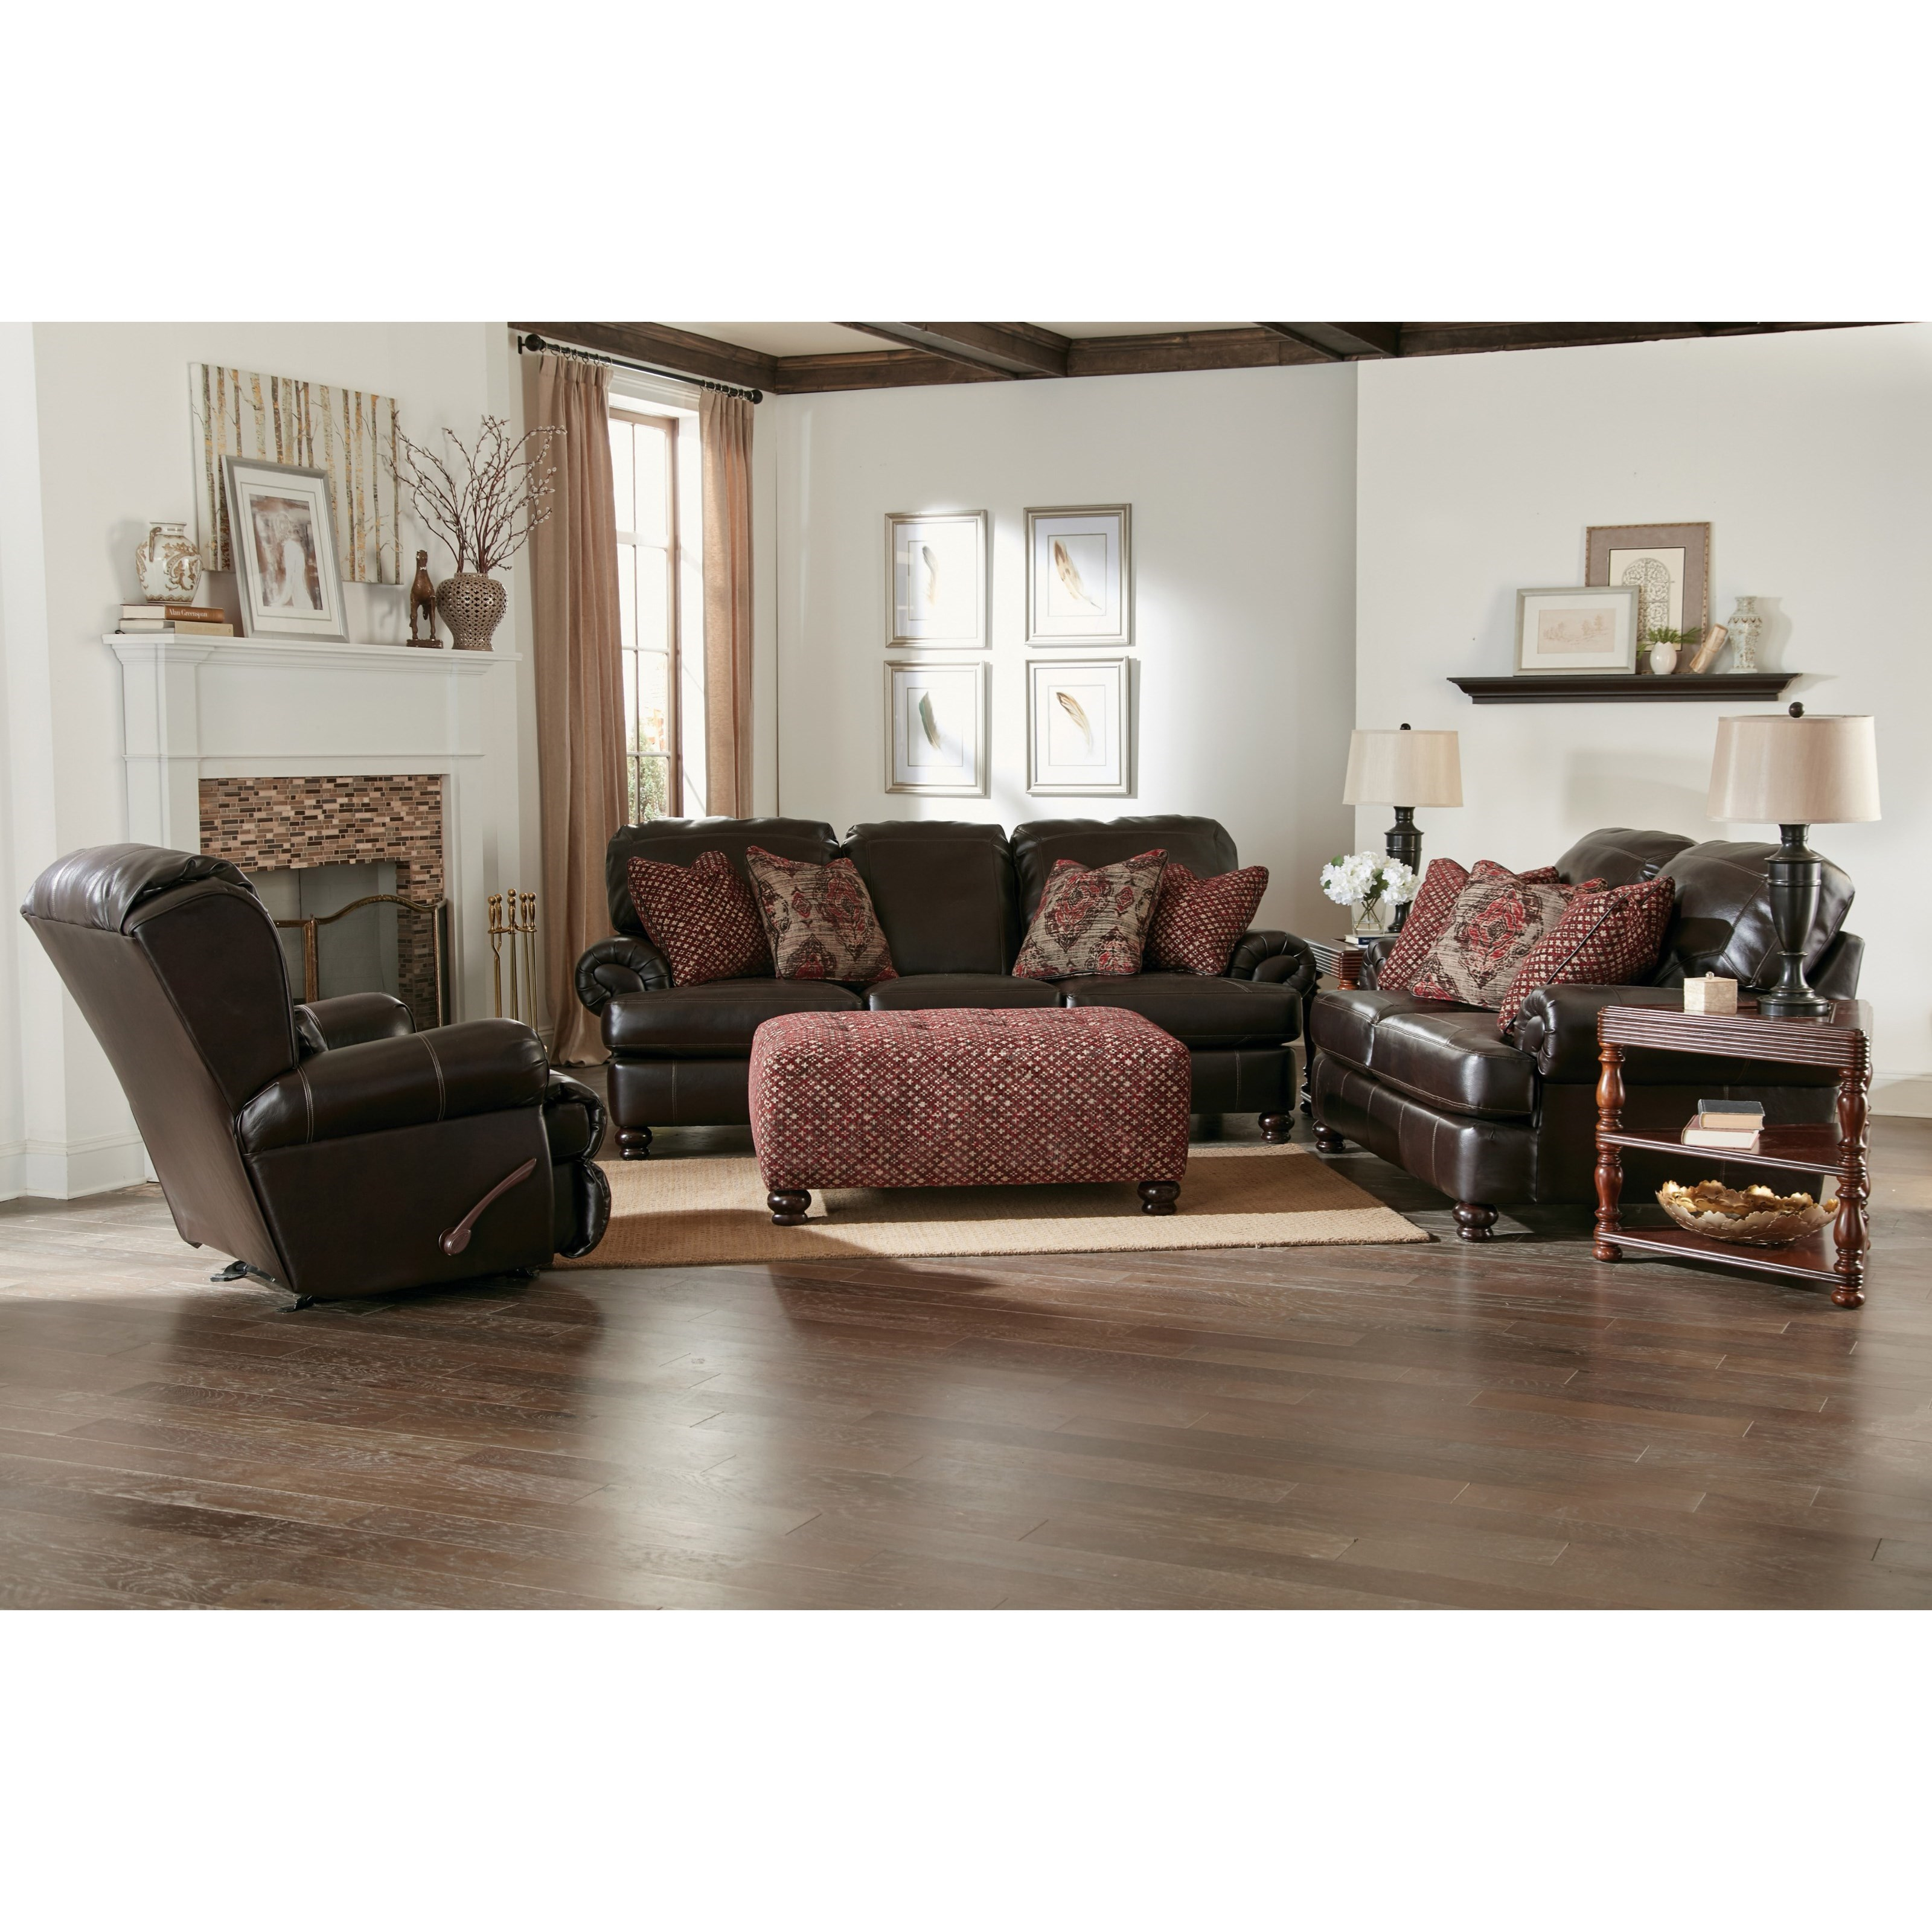 Jackson Furniture Southport Stationary Living Room Group - Item Number: Living Room Group 1-Espresso